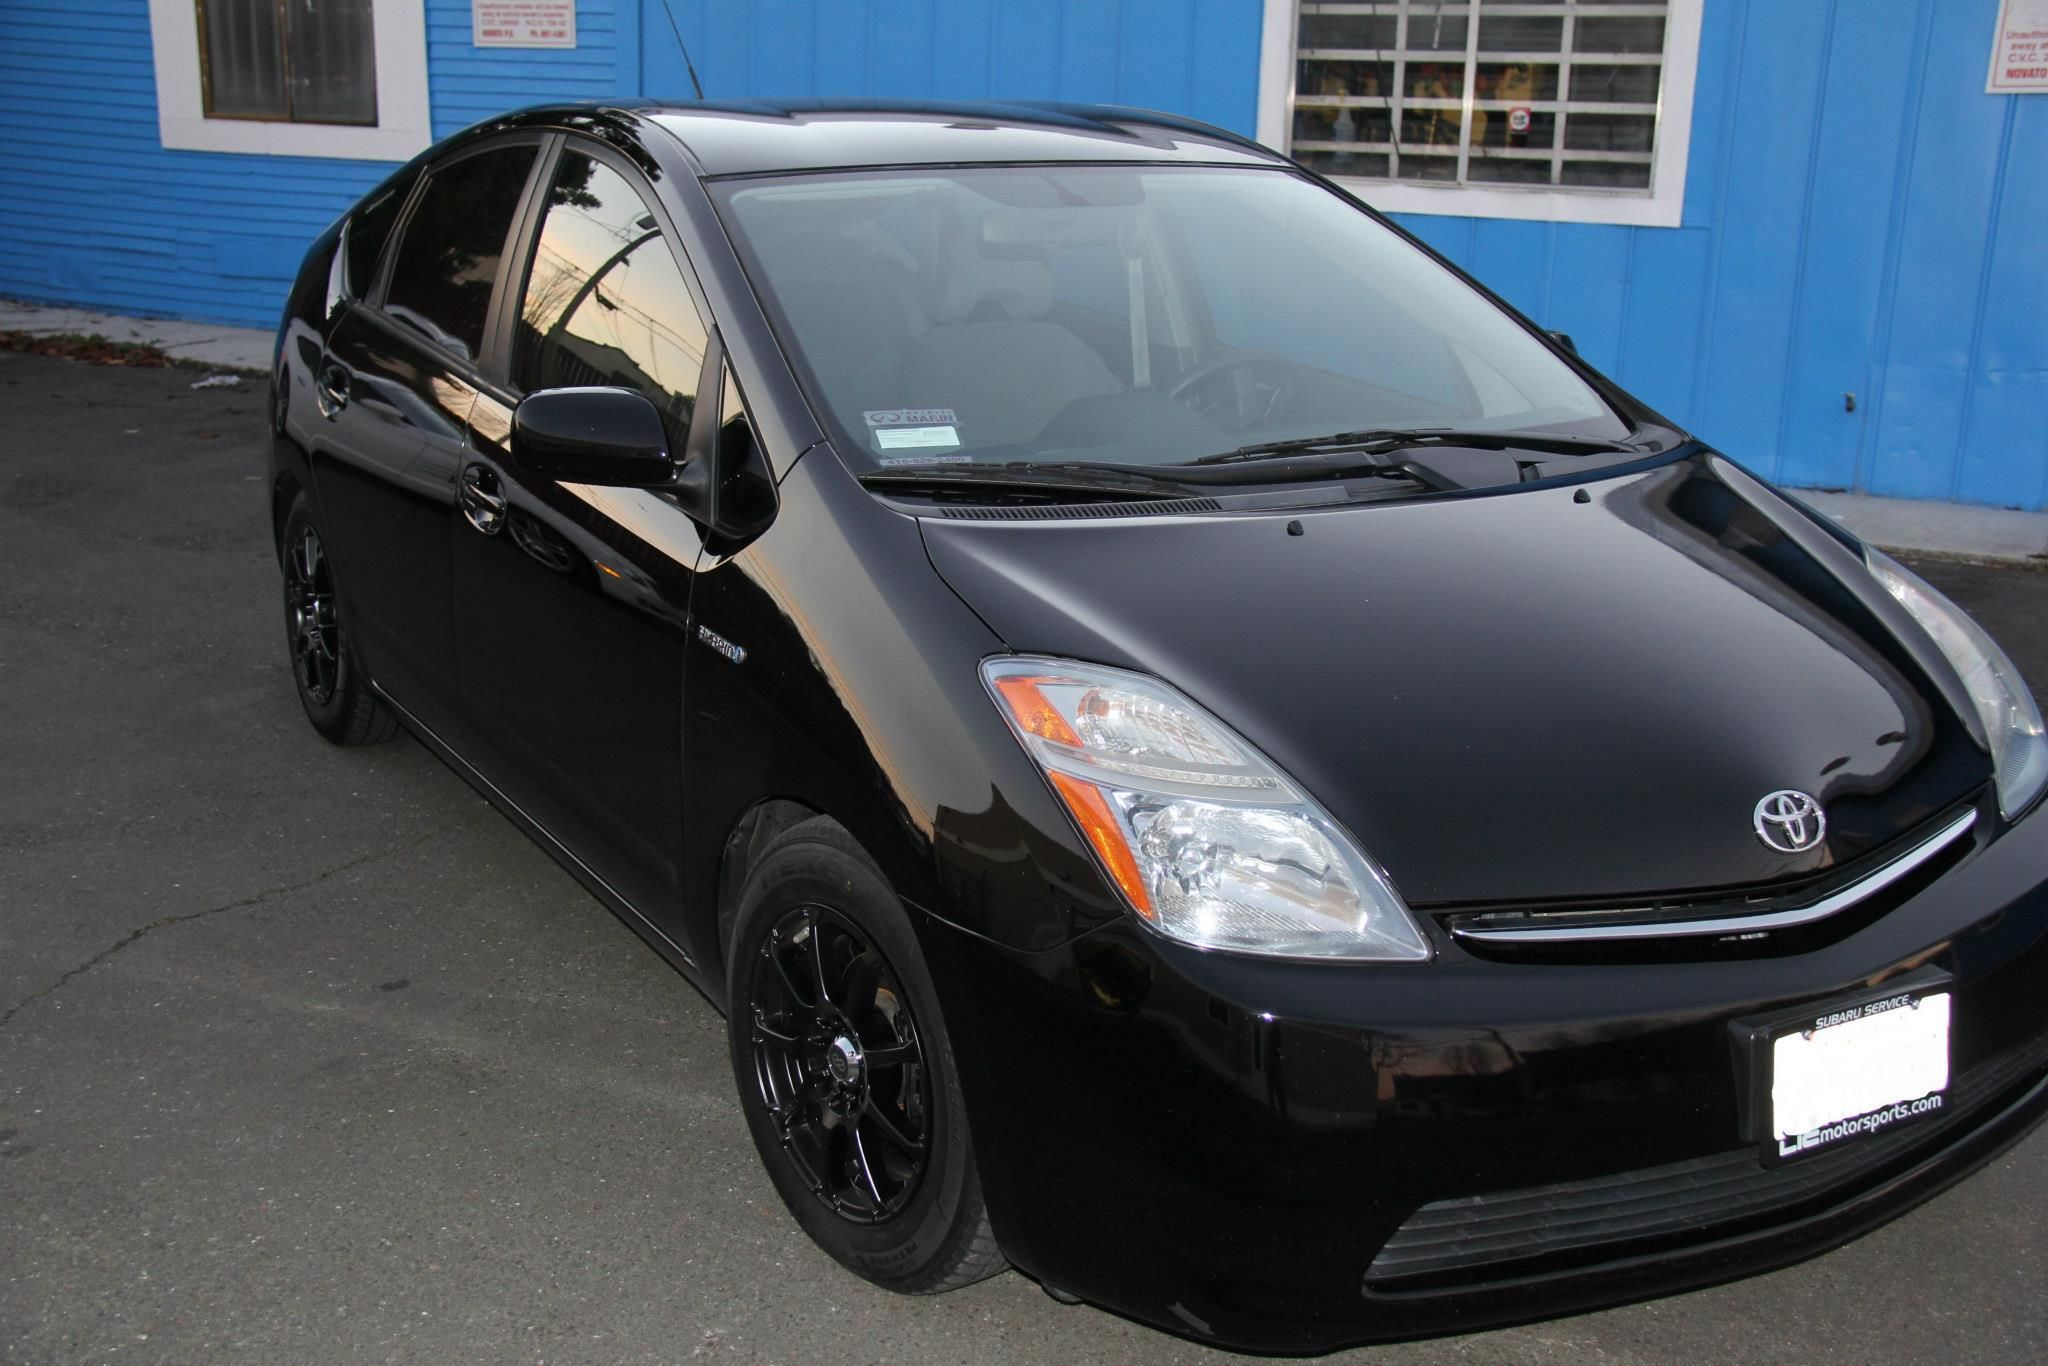 Toyota After Modification And Or Restoration By Lic Motorsports Chariotz Prius Toyota Toyota Prius